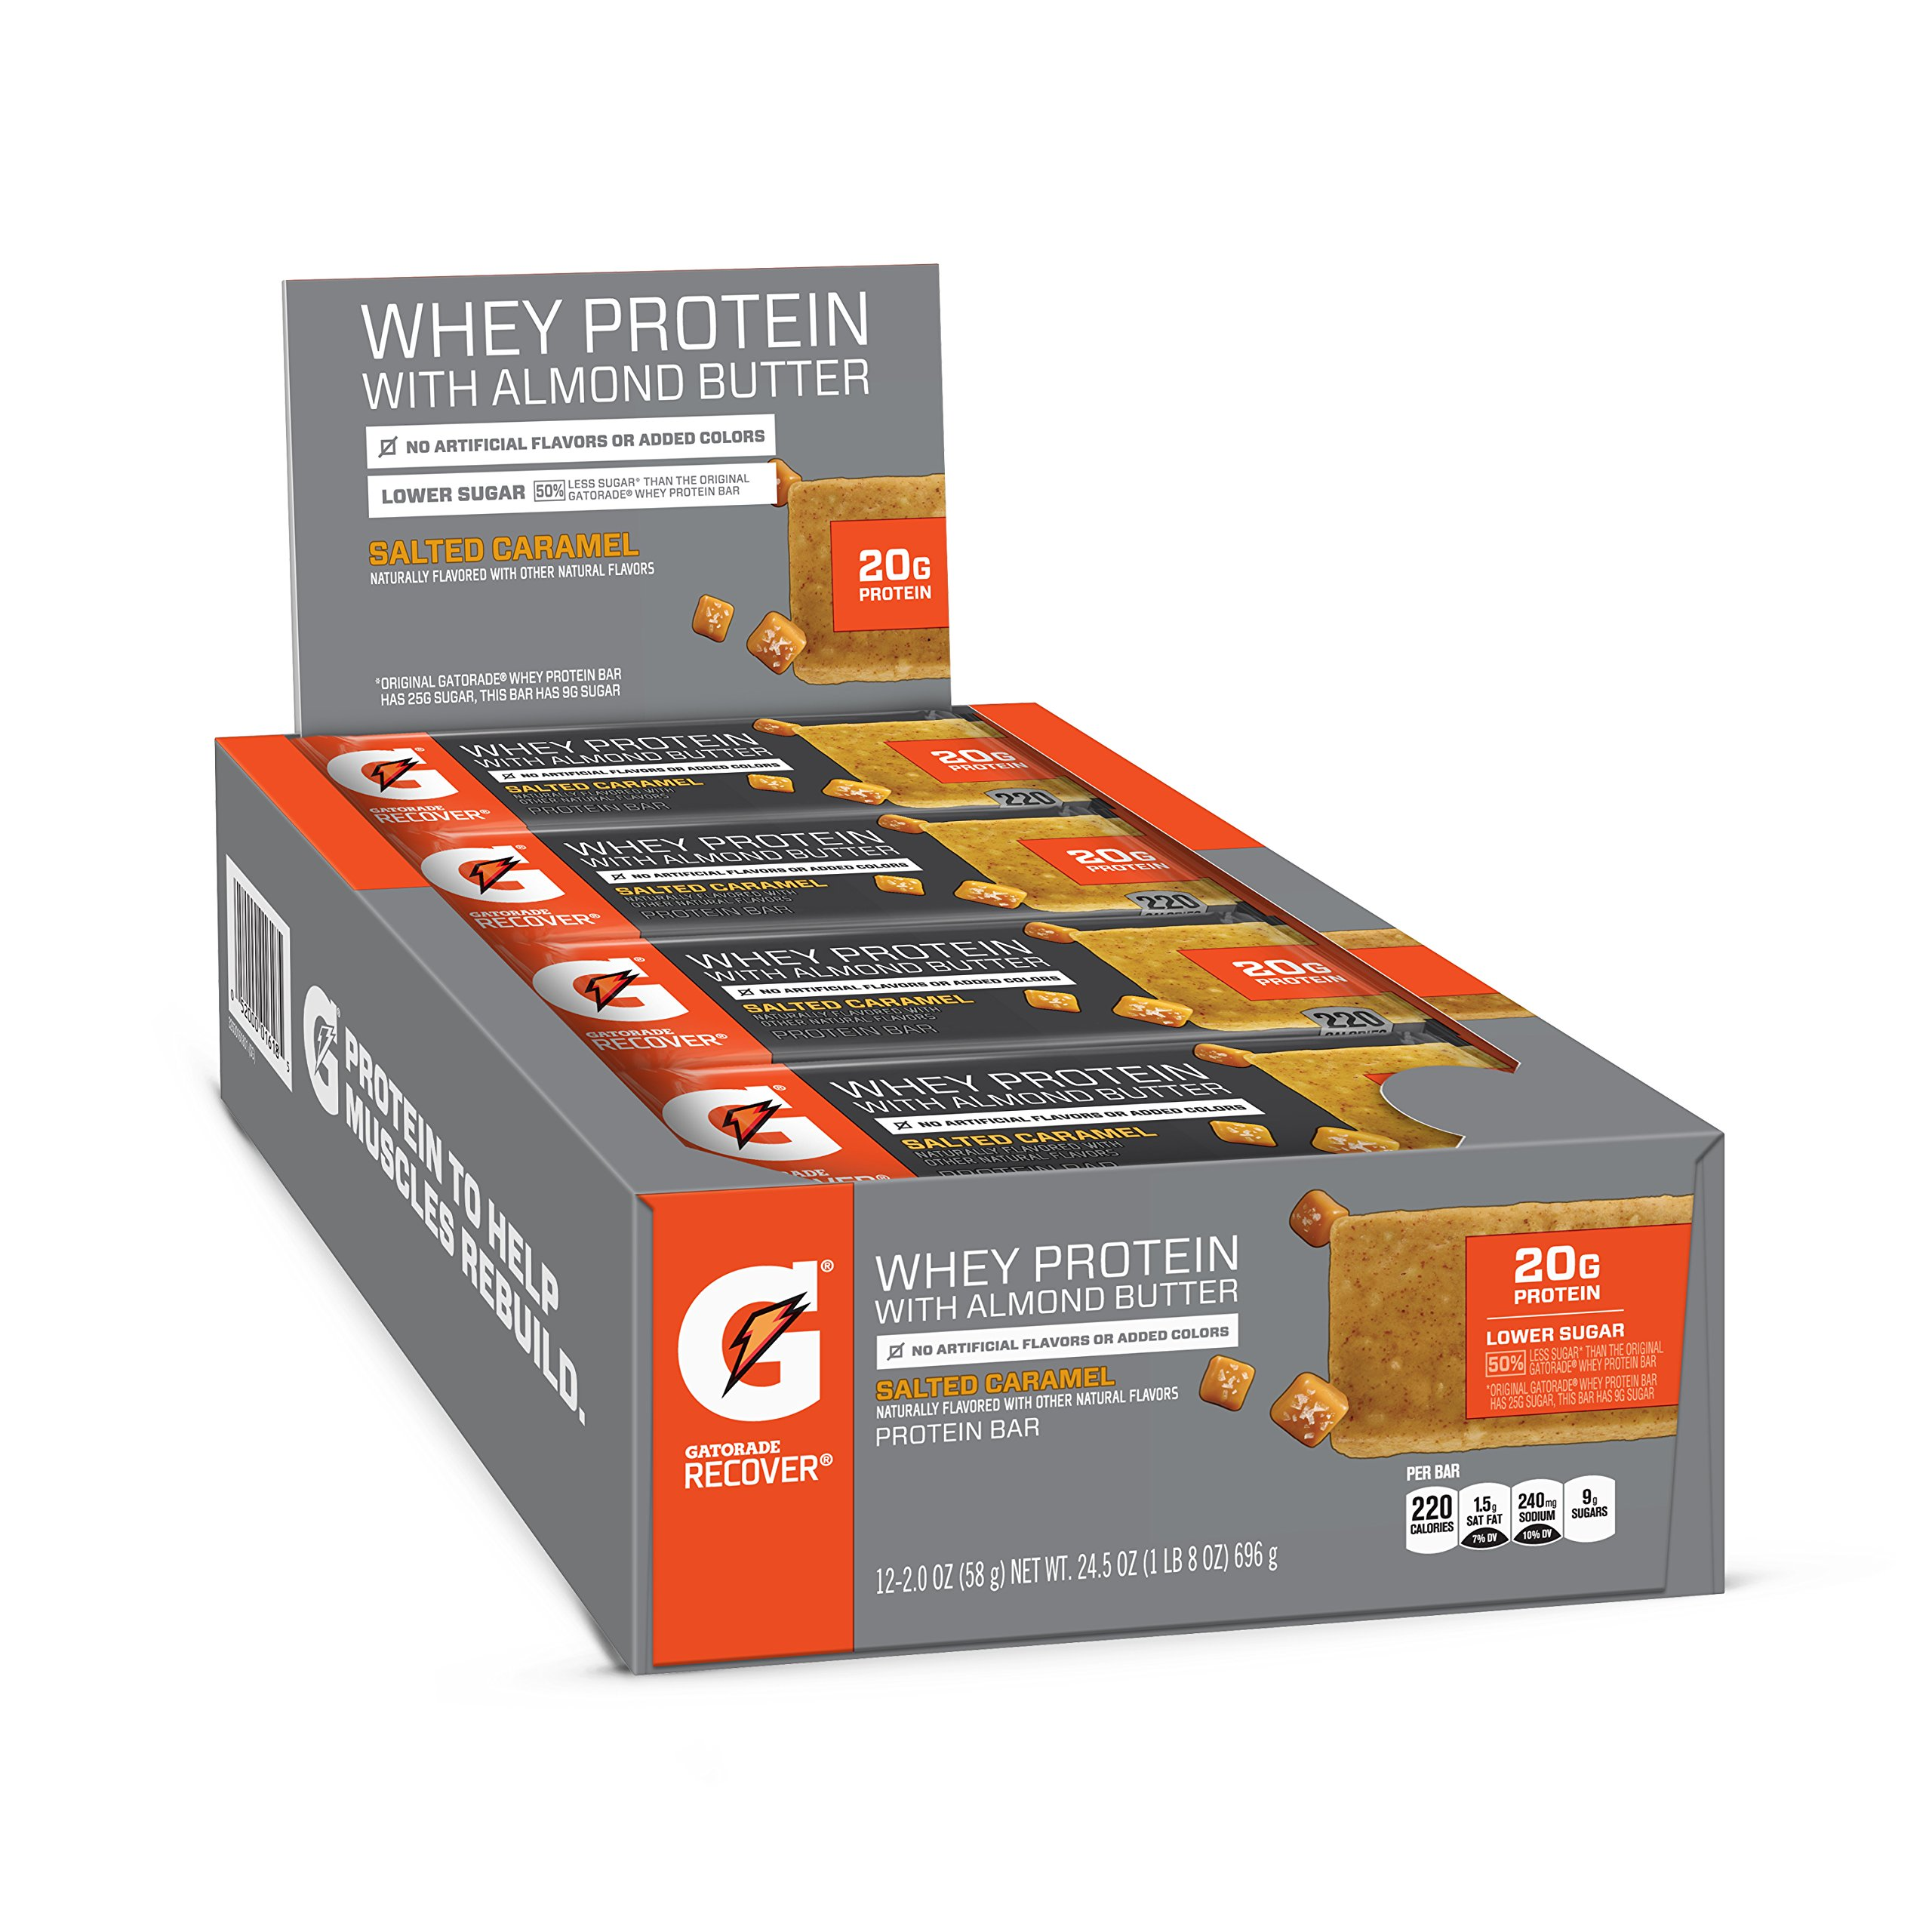 Gatorade Whey Protein With Almond Butter Bars, Salted Caramel, 12 Count by Gatorade